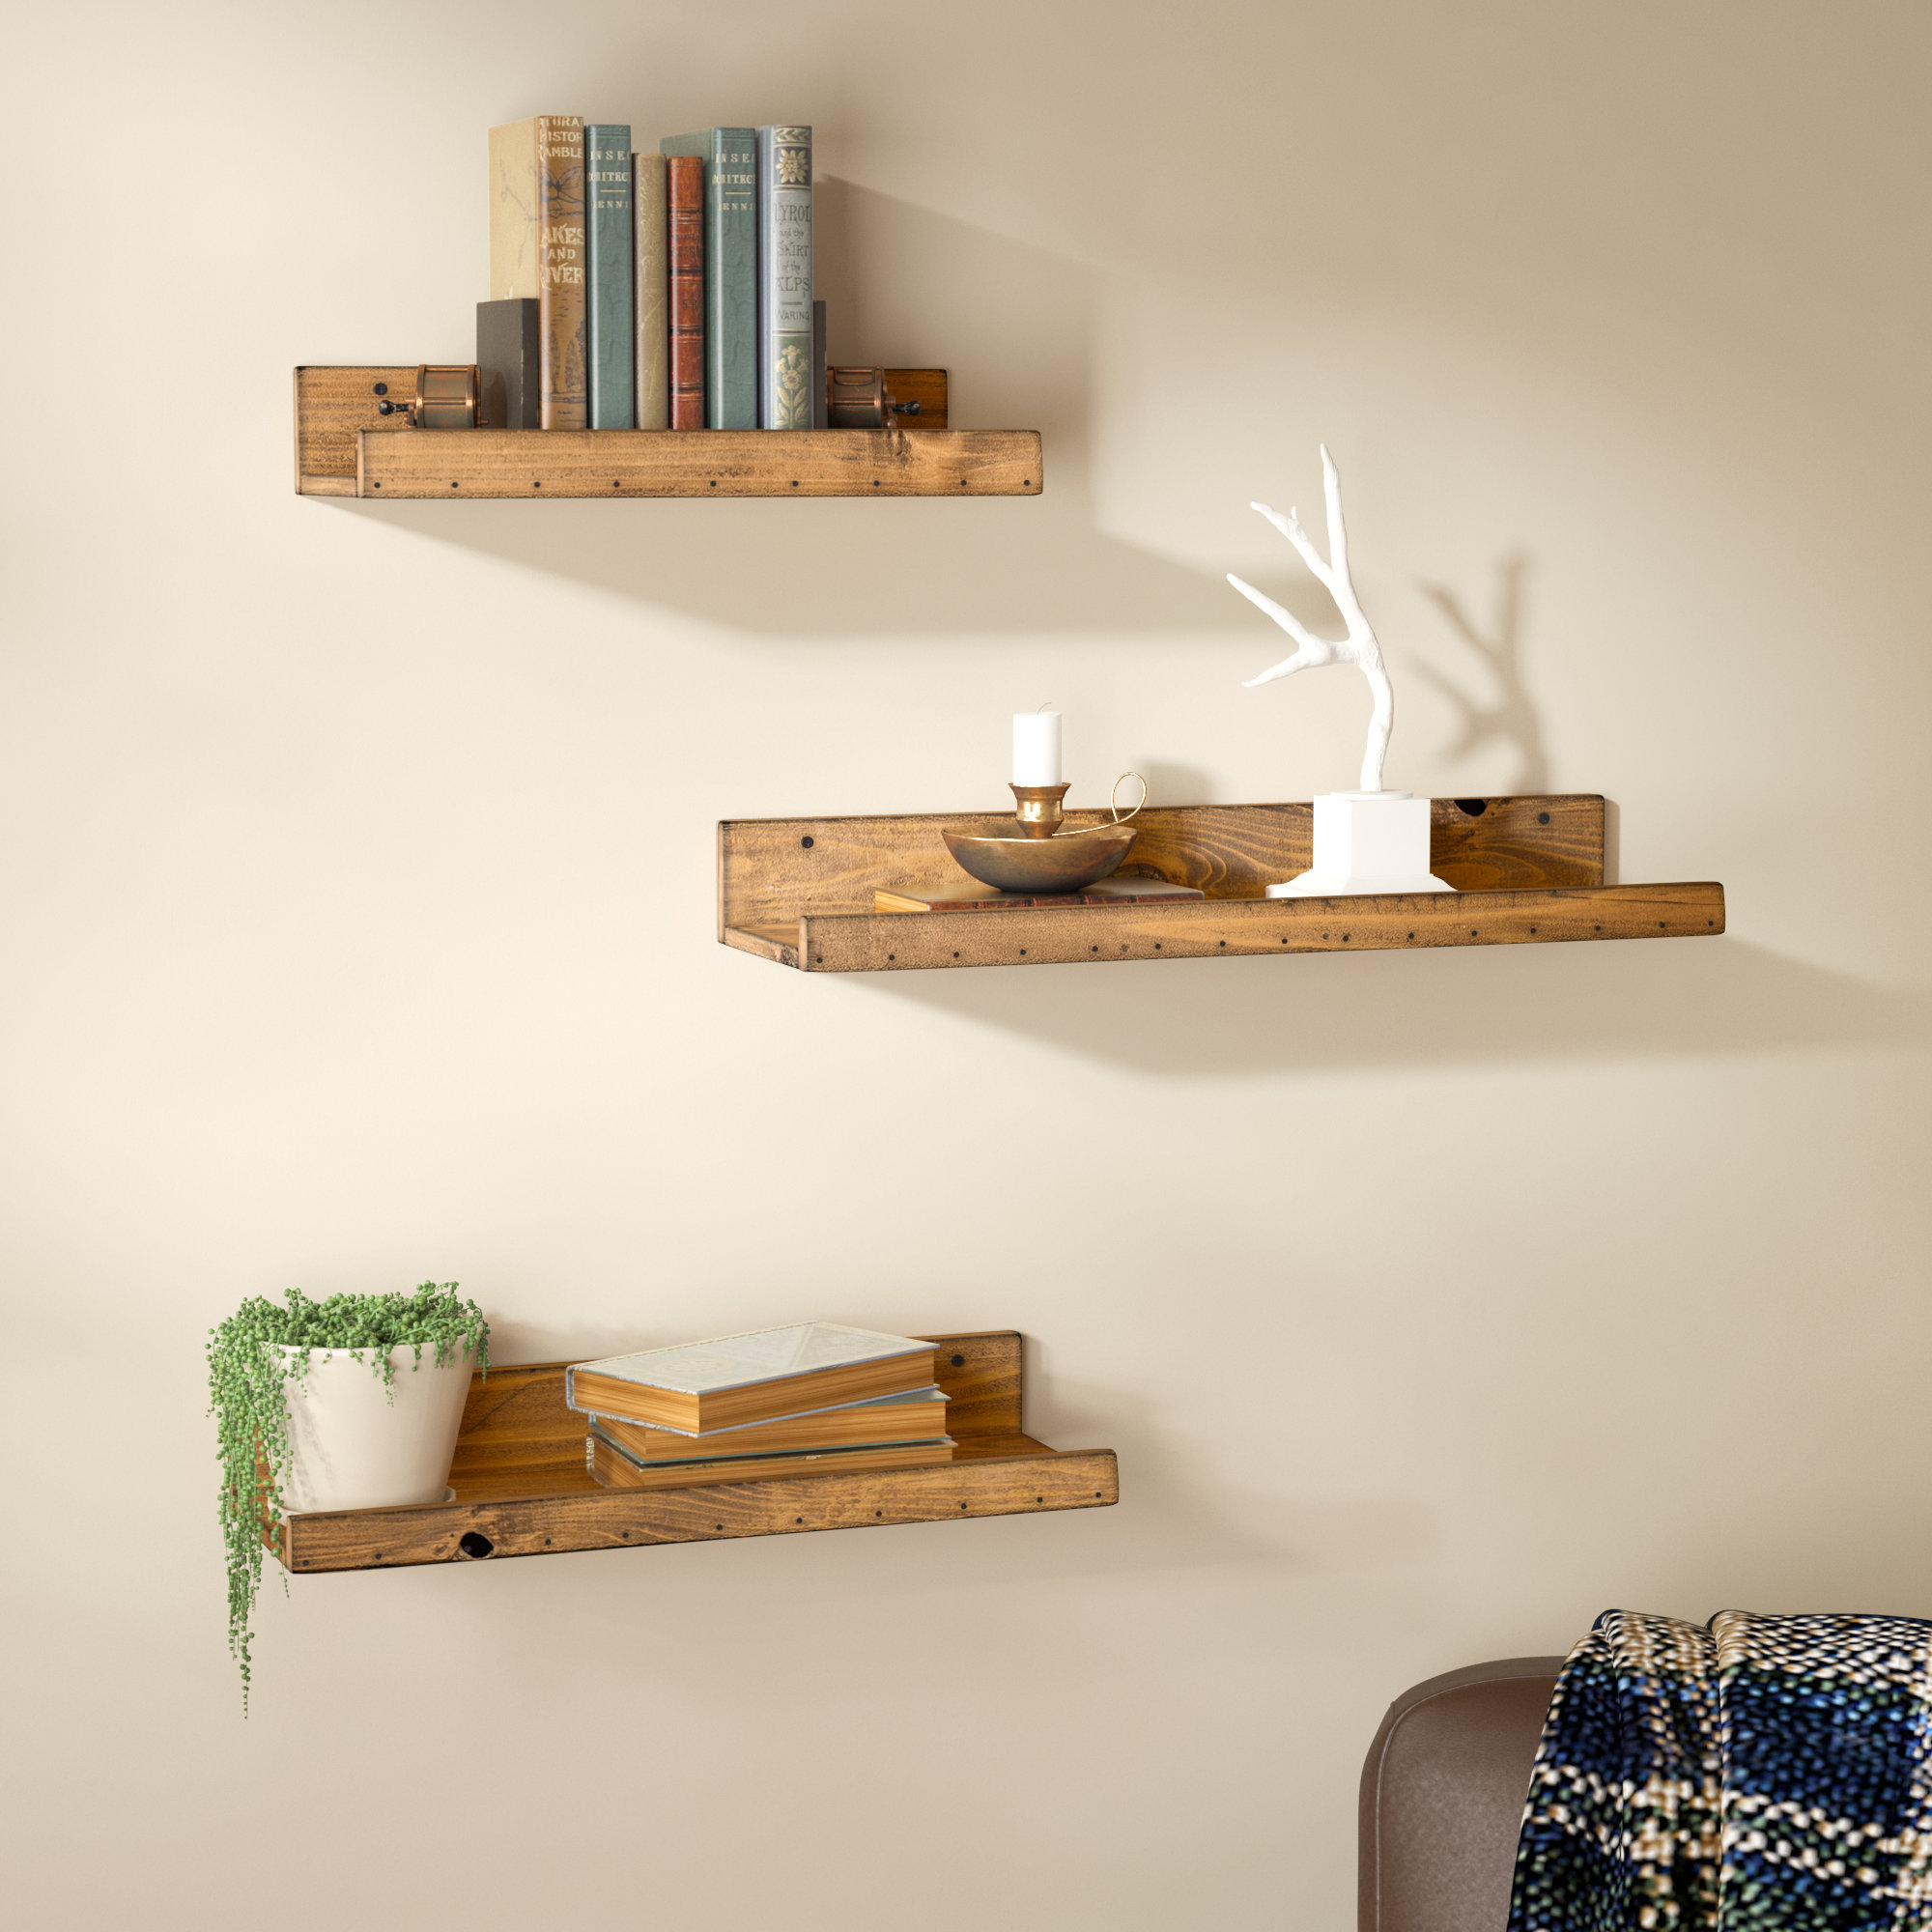 dunlap rustic piece floating shelf set reviews birch lane wood shelves wall hanging wooden small bathroom bright coloured inch shelving unit closed shoe rack designs simple